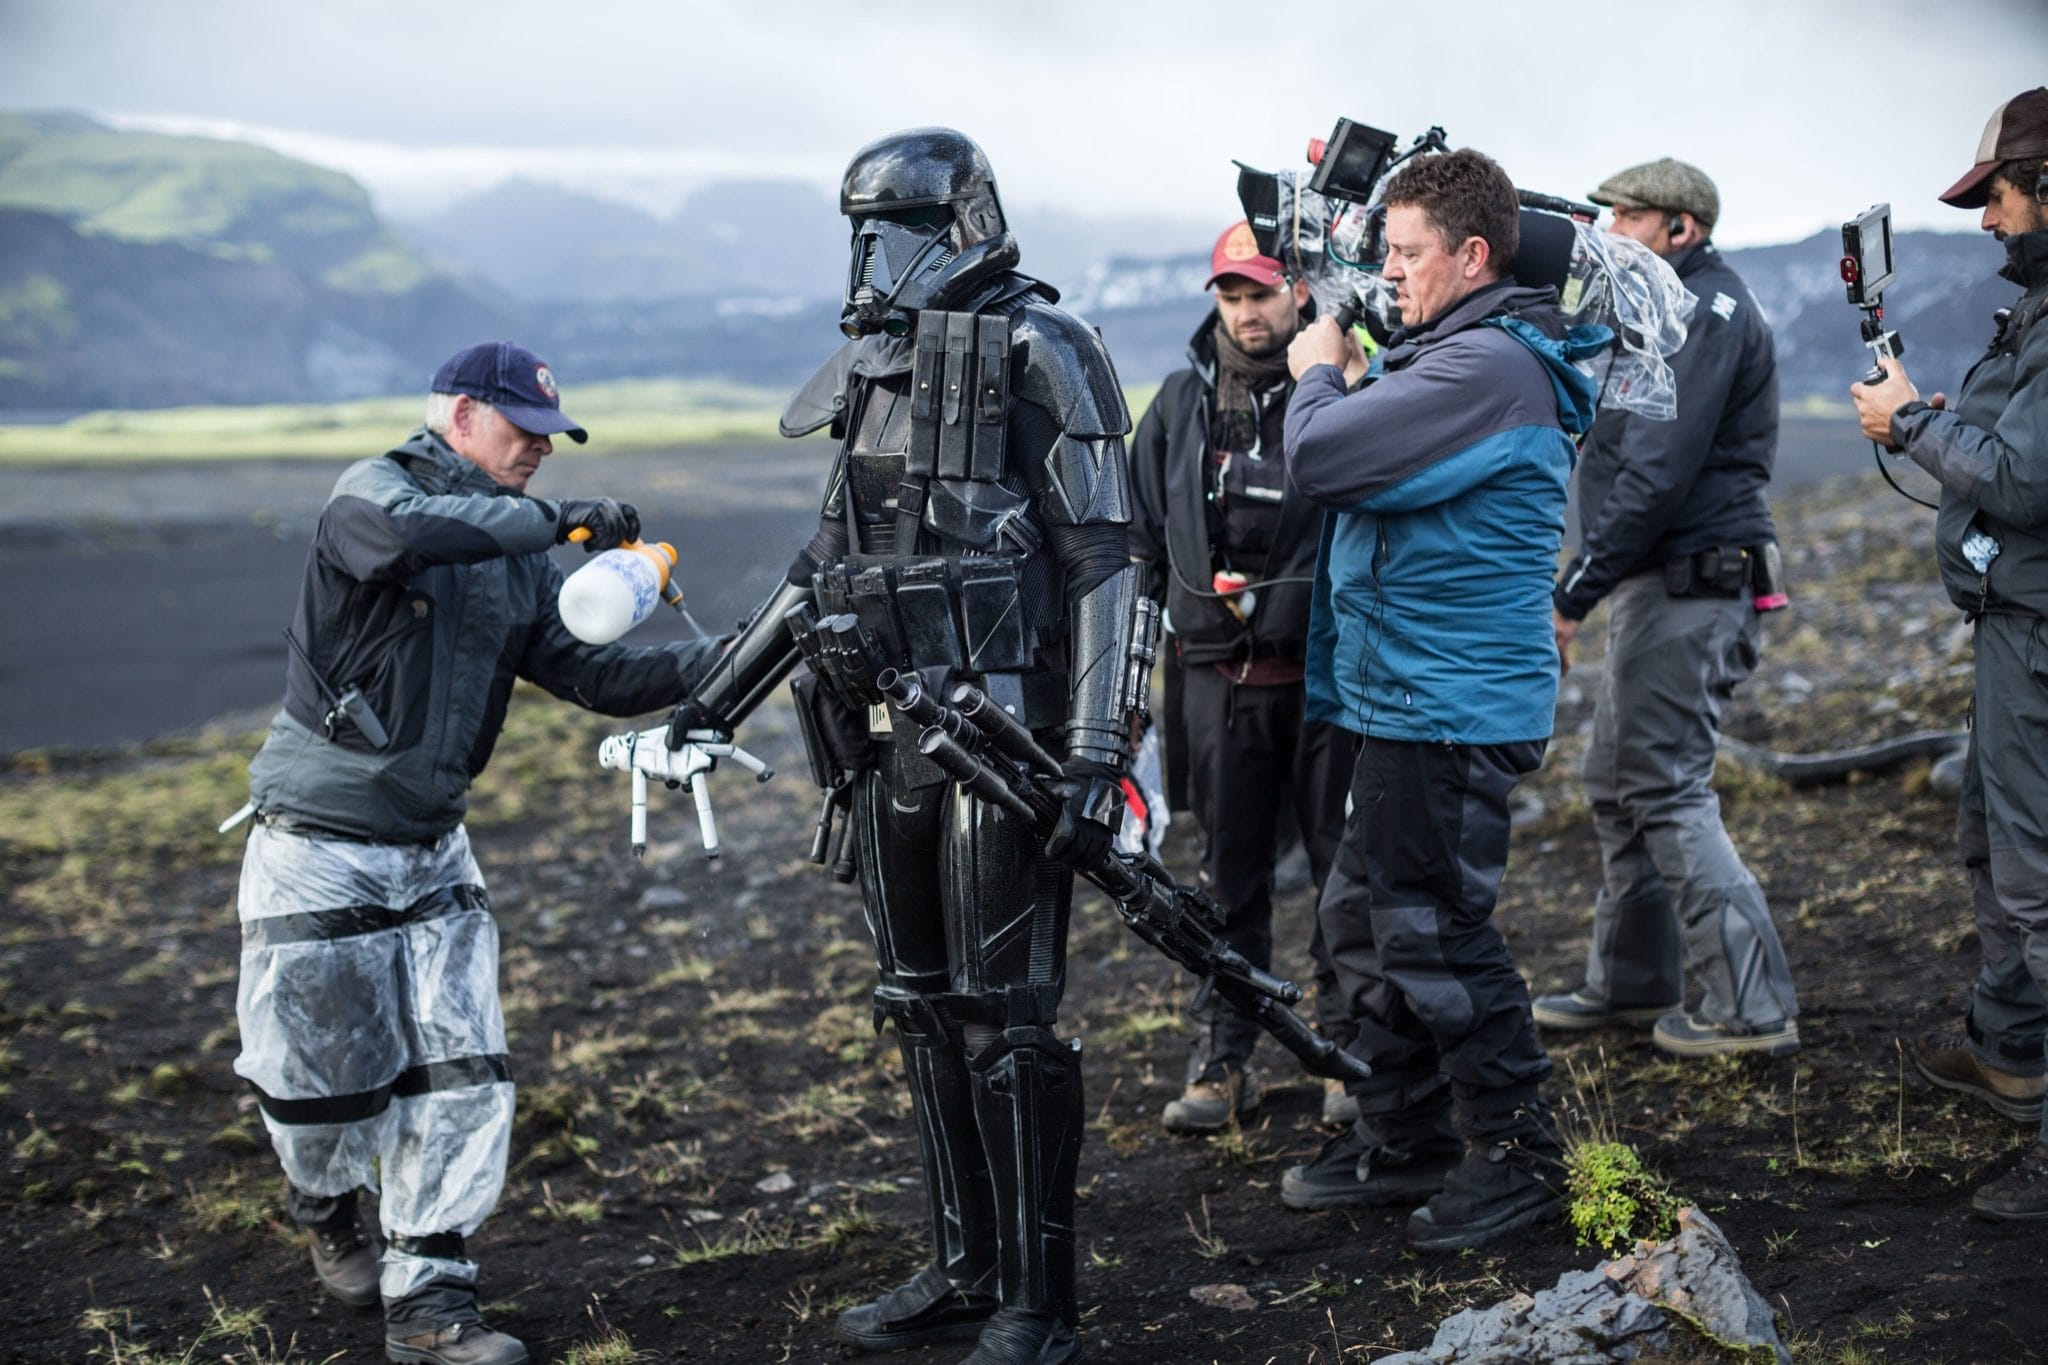 rogue-one-a-star-wars-story-gareth-edwards-image-4